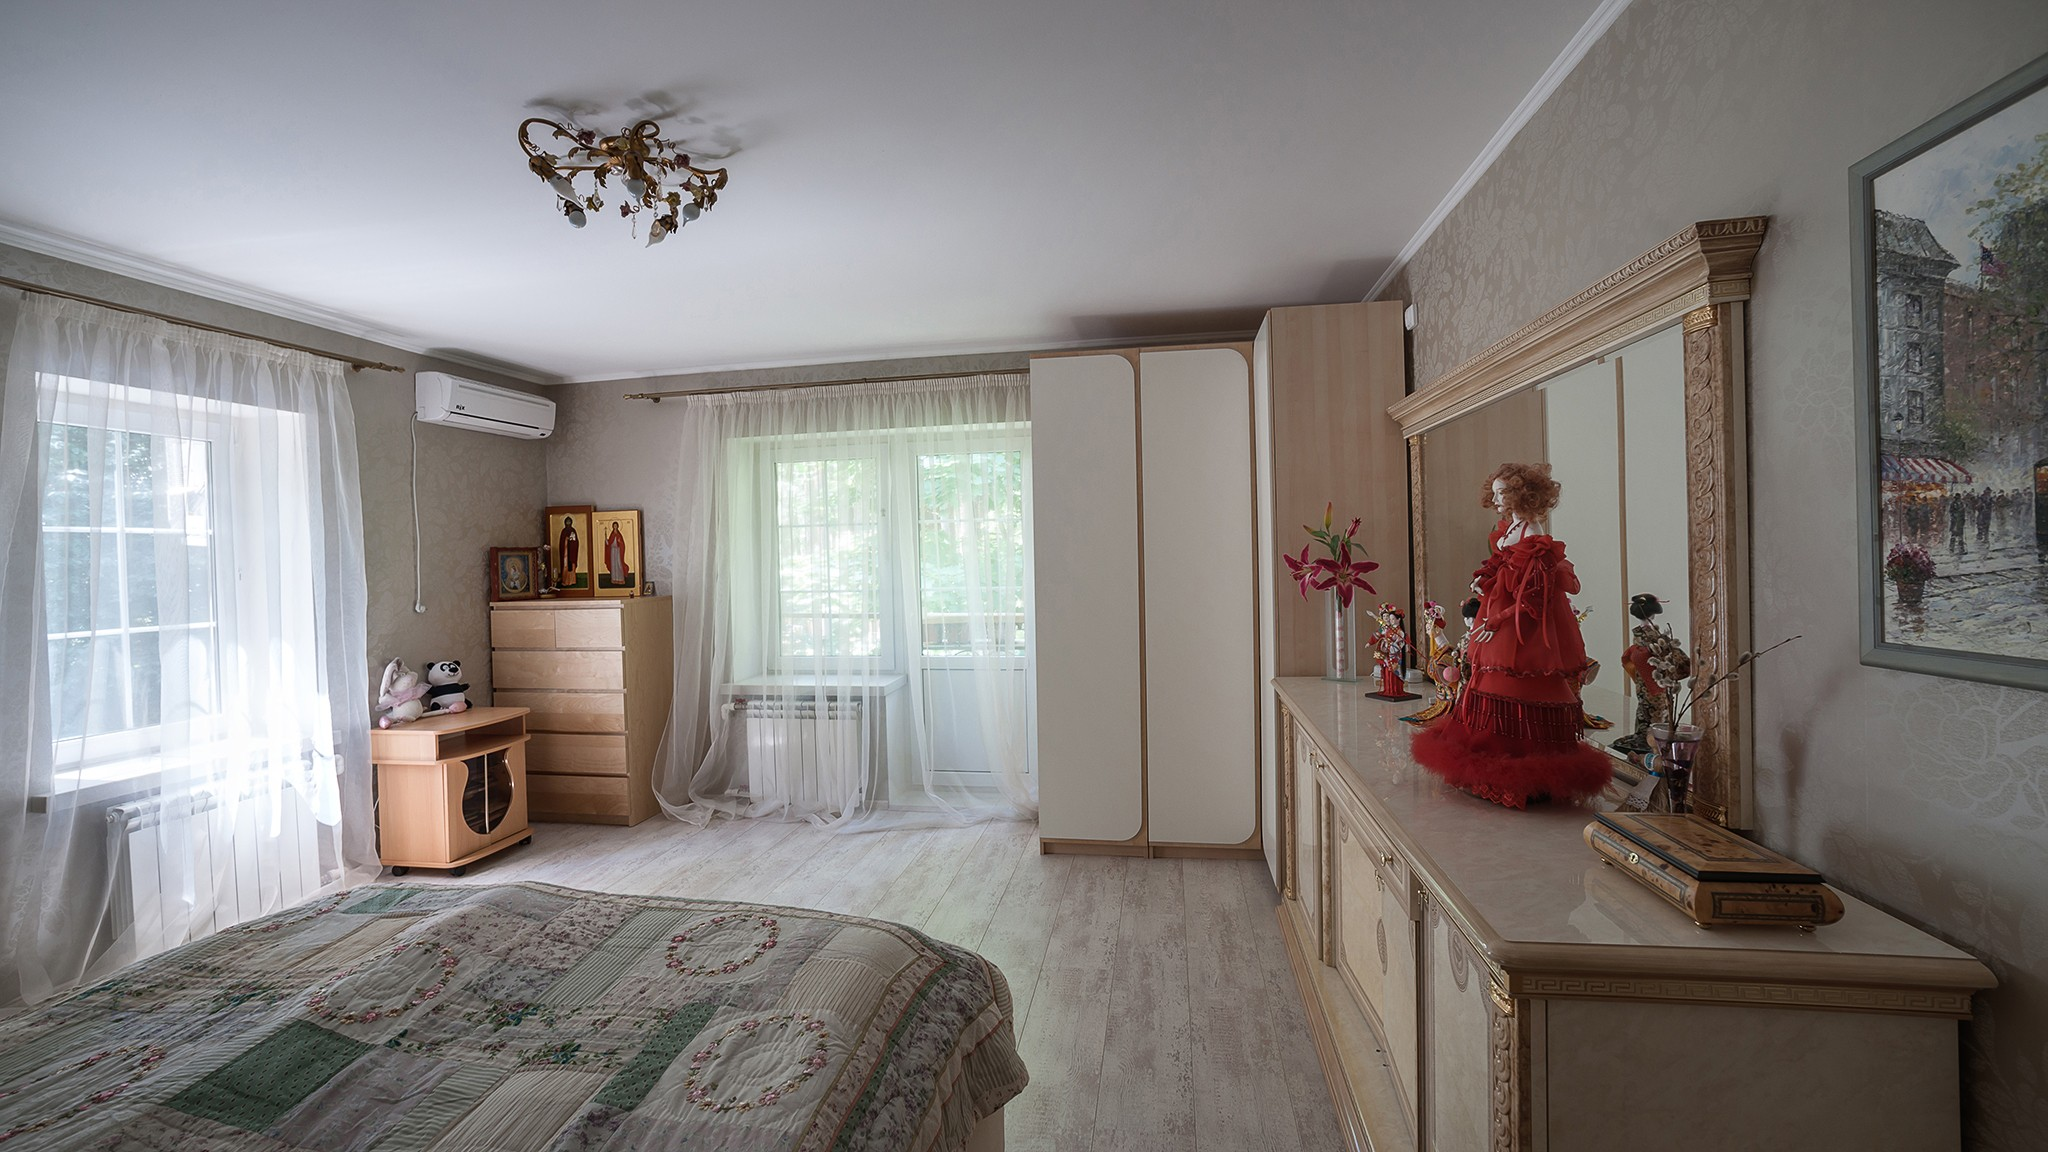 Photograph of a family house for sale. Interior and exterior of the house